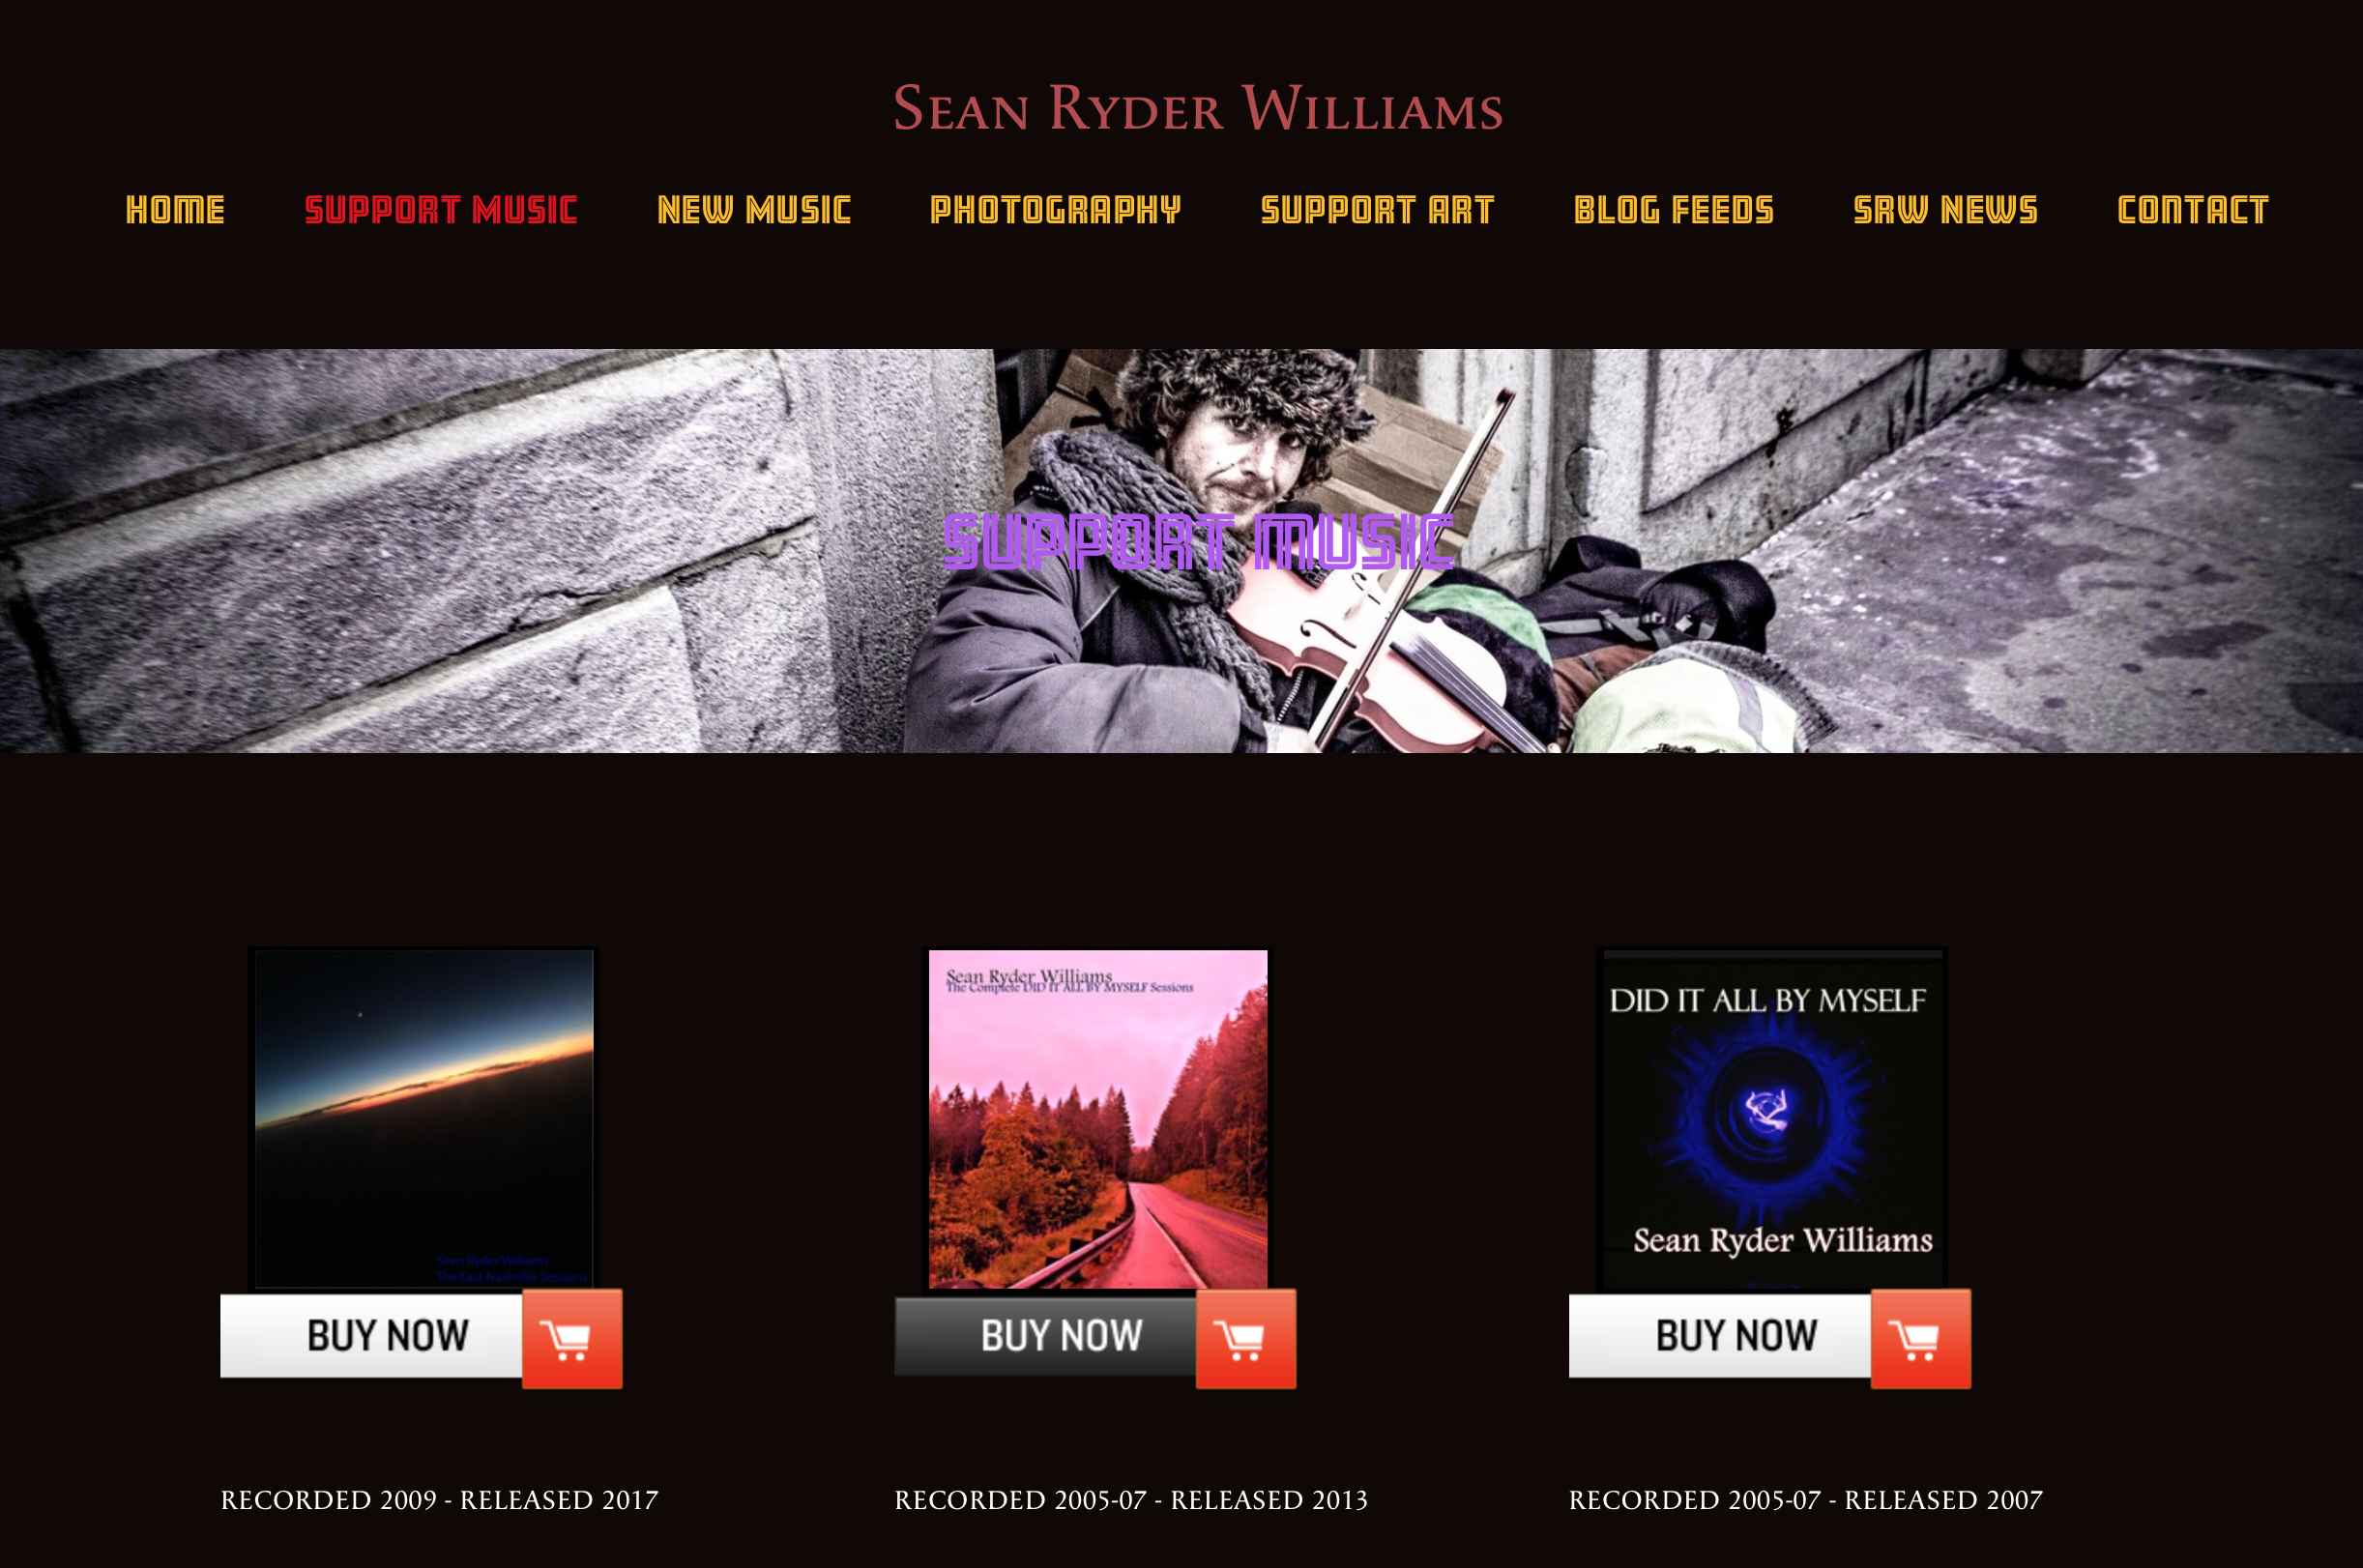 Sean_Ryder_Williams_Image_2.png